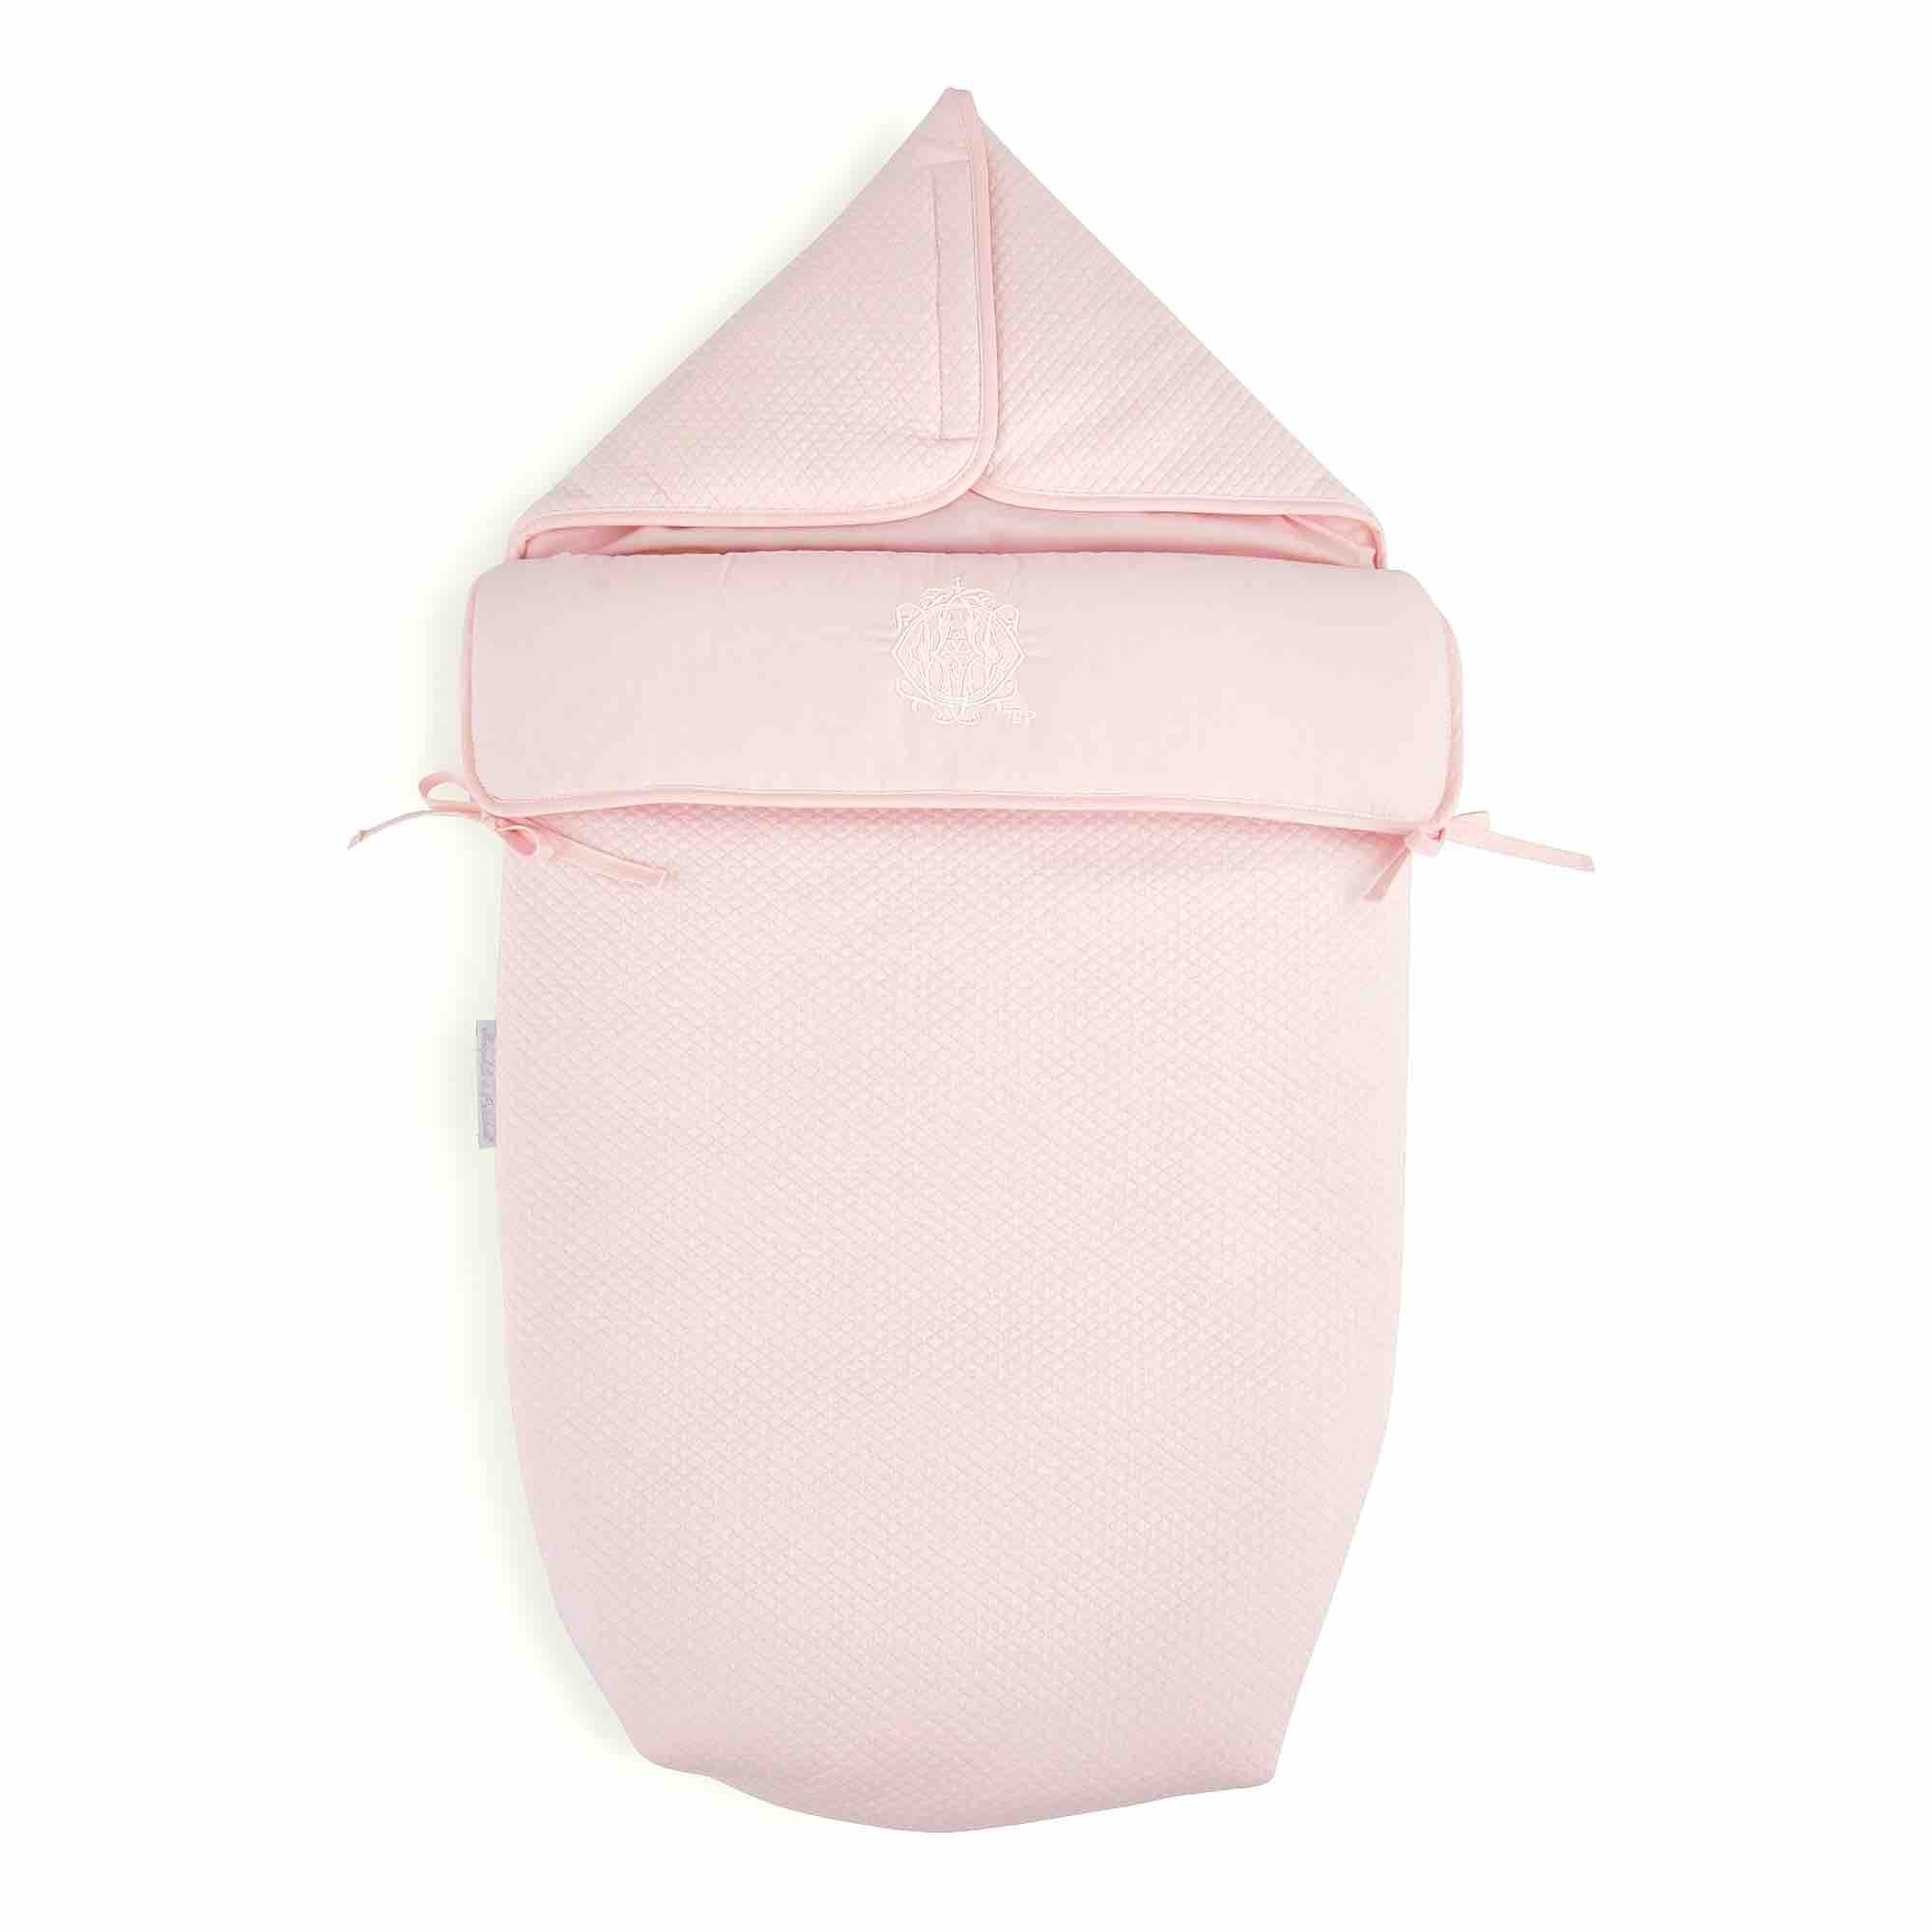 Theophile & Patachou Hooded Sleeping Bag - Royal Pink